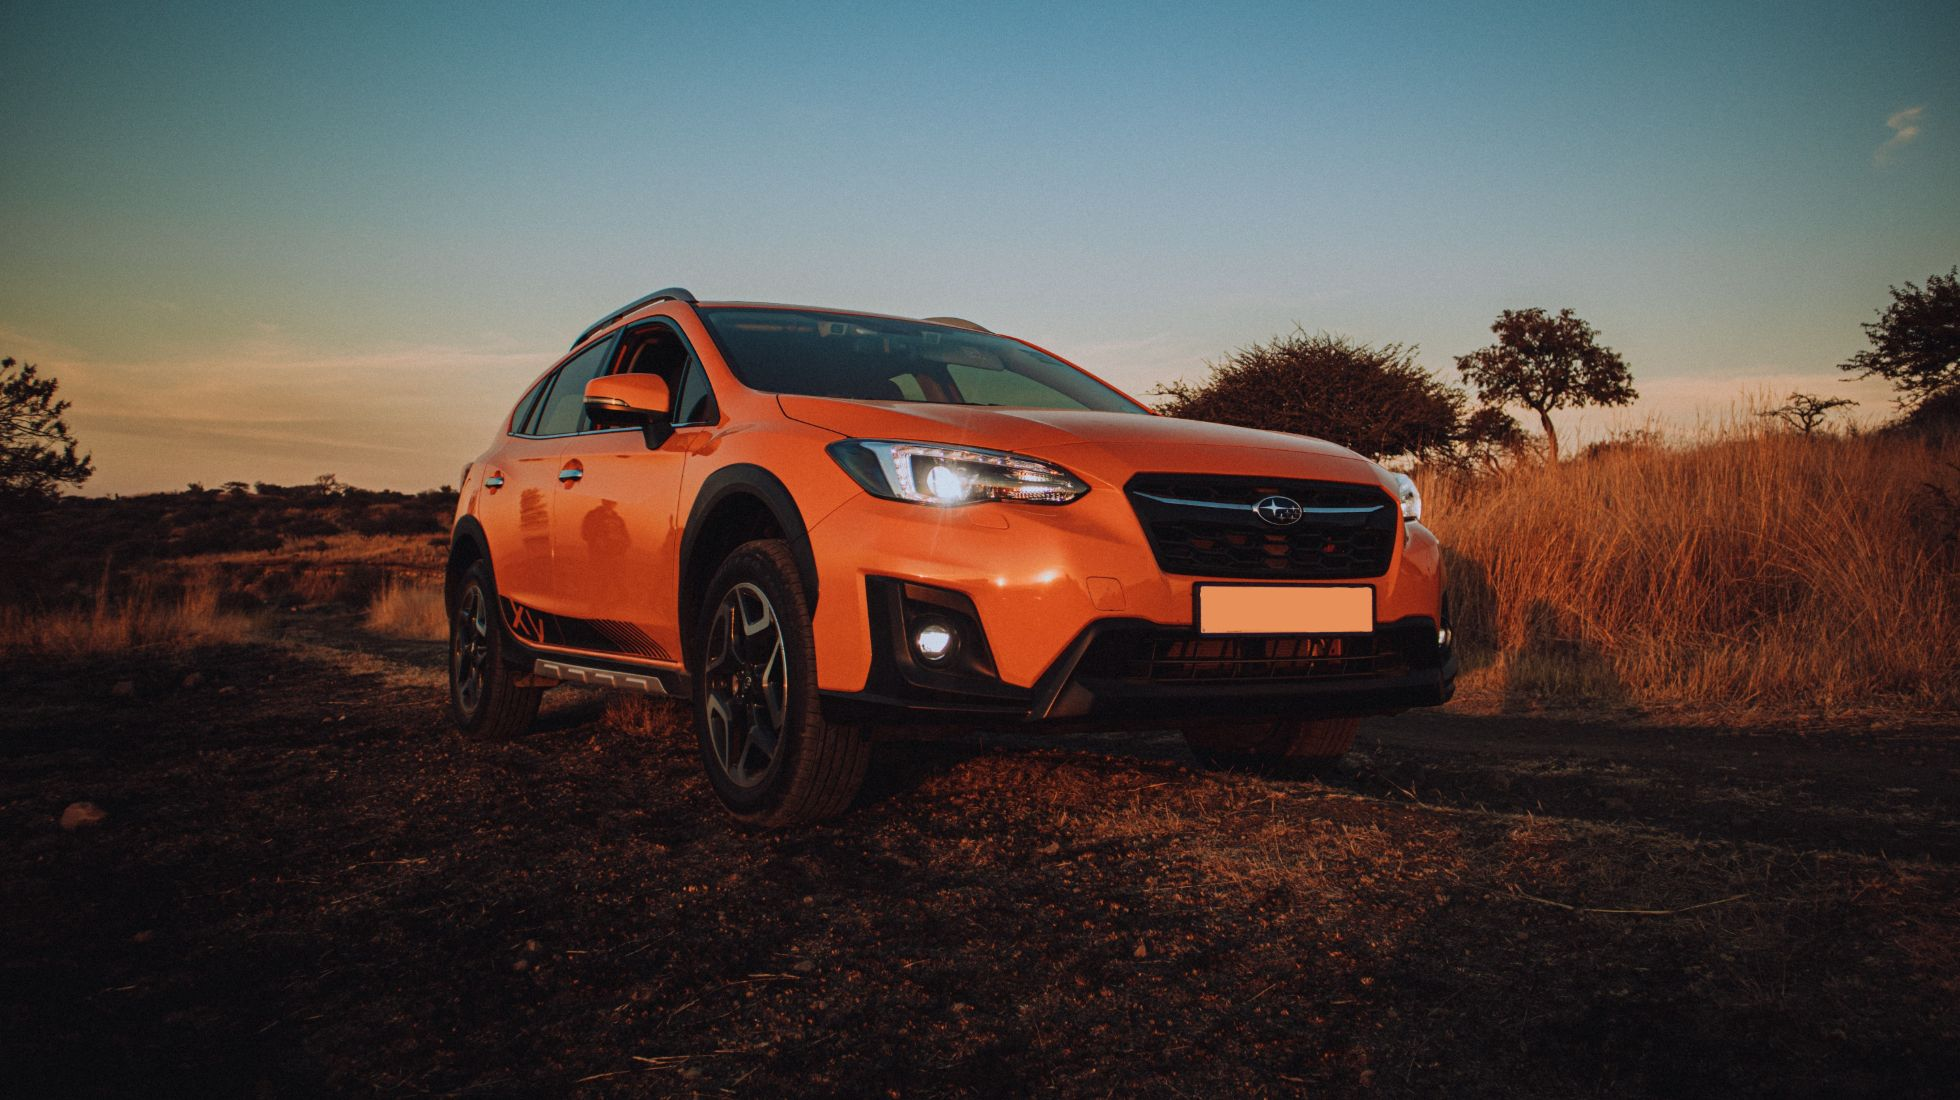 The Subaru XV may not be a class-leader but is still very good.